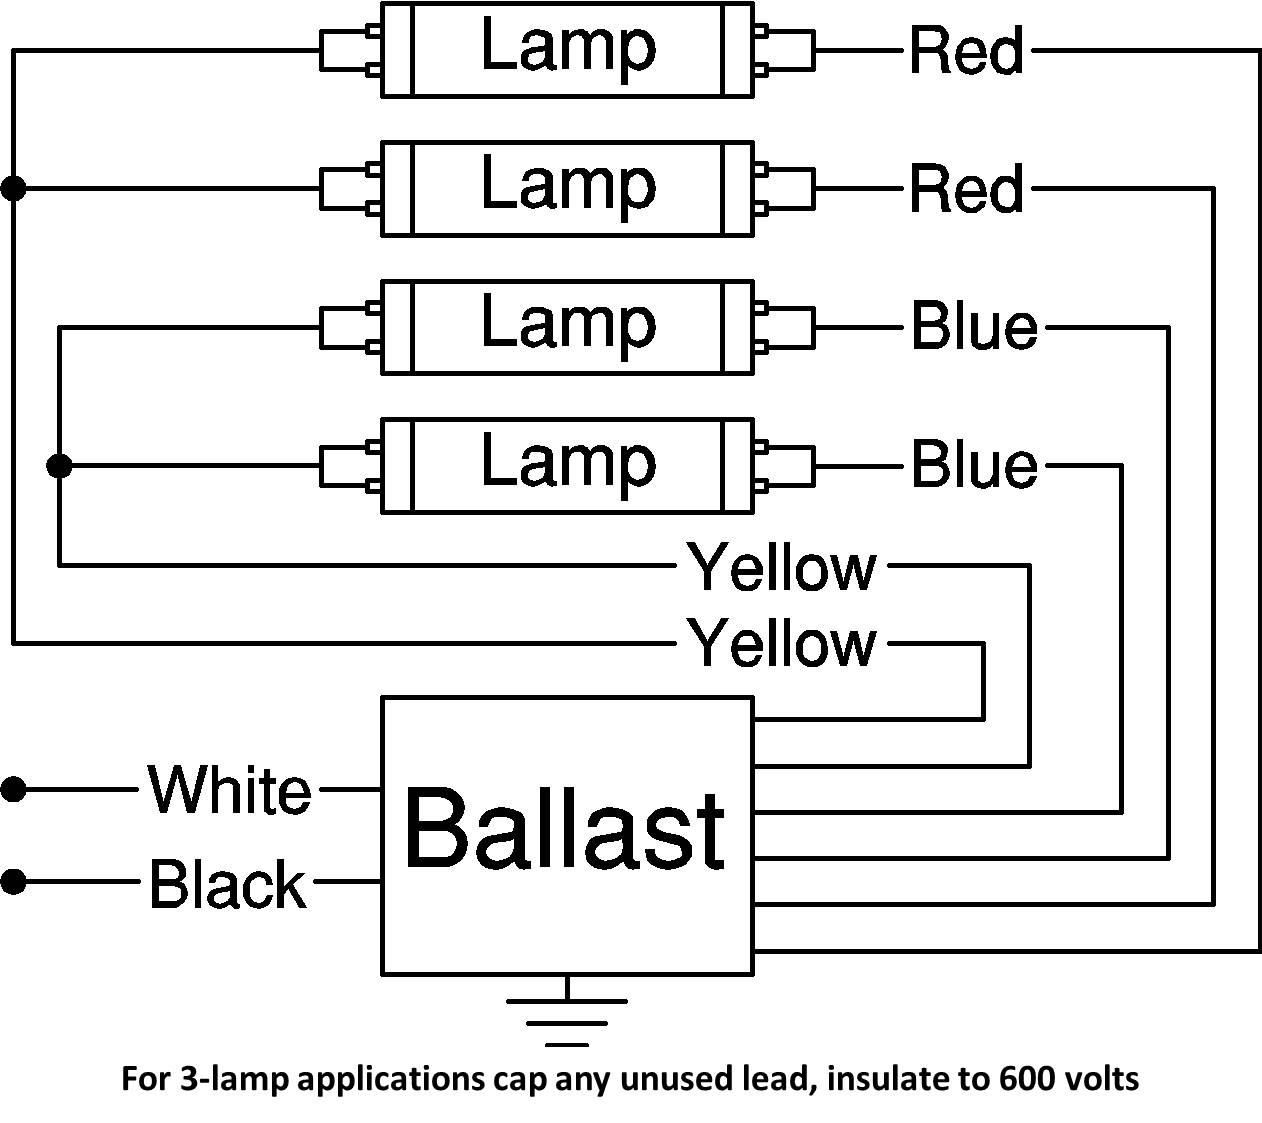 2 lamp t8 ballast wiring diagram 2 image wiring 4 lamp 2 ballast wiring diagram 4 auto wiring diagram schematic on 2 lamp t8 ballast